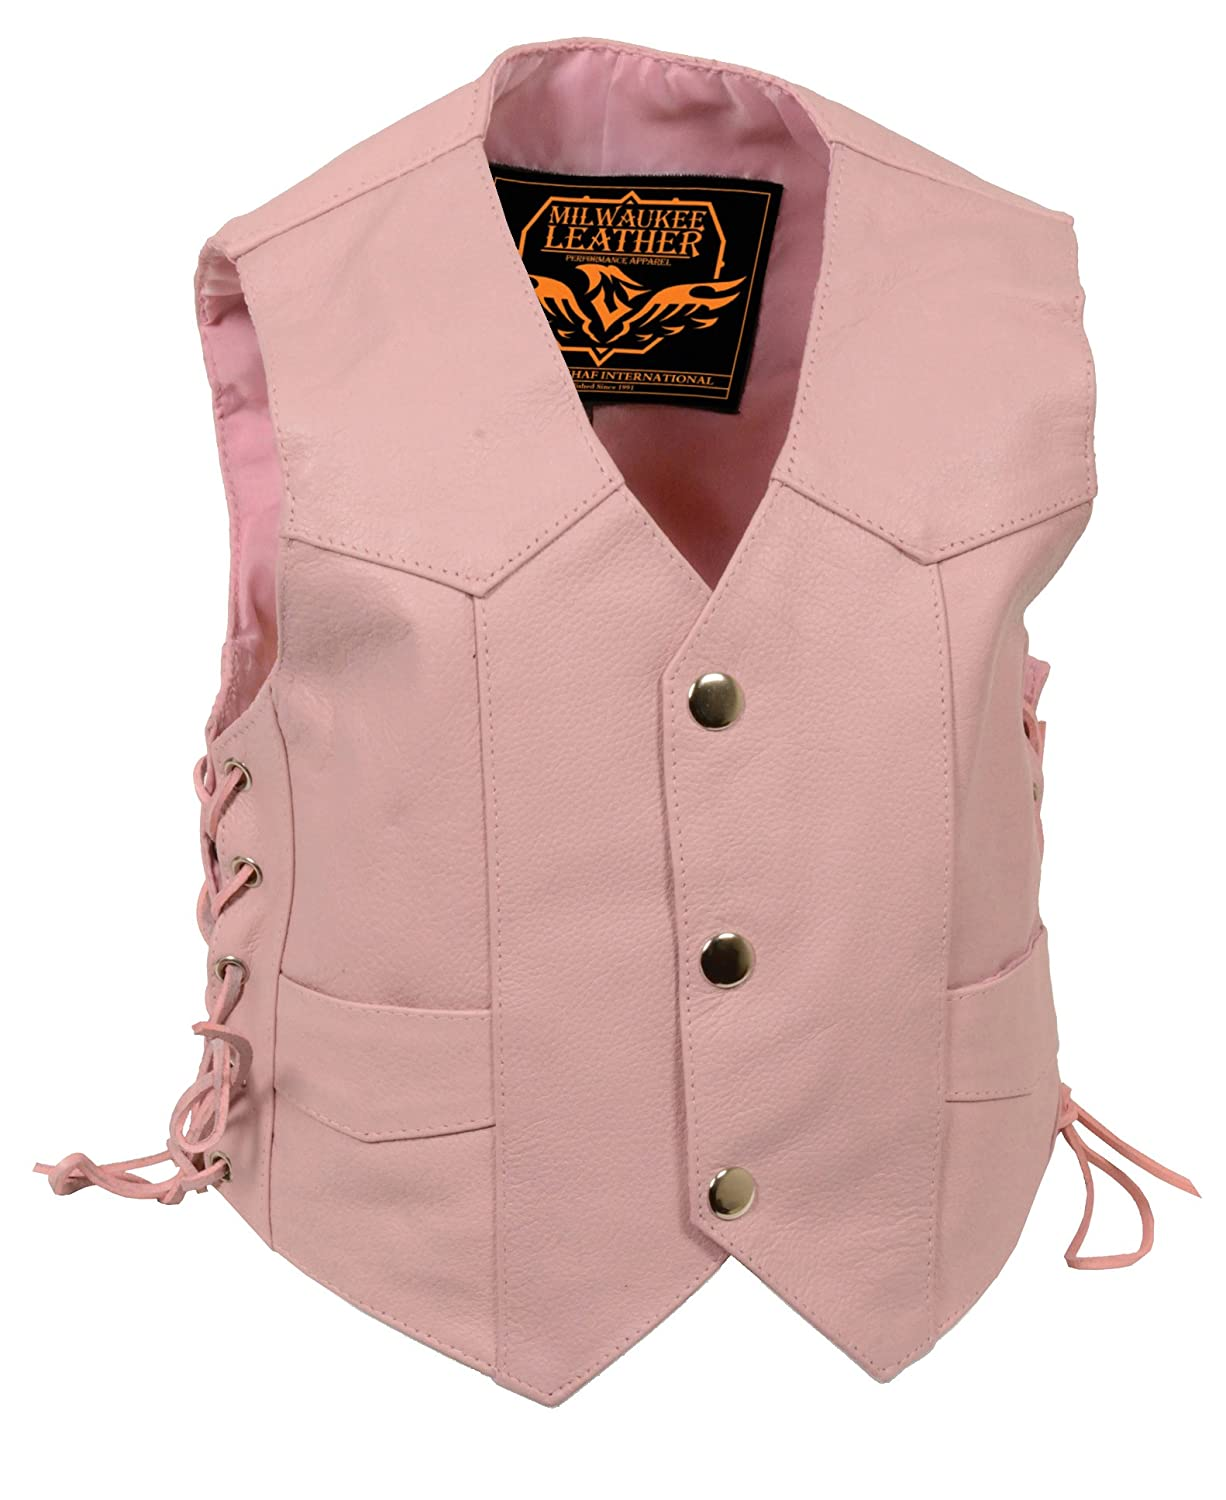 Kids Milwaukee Leather Girls Side Lace Vest Pink, X-Small